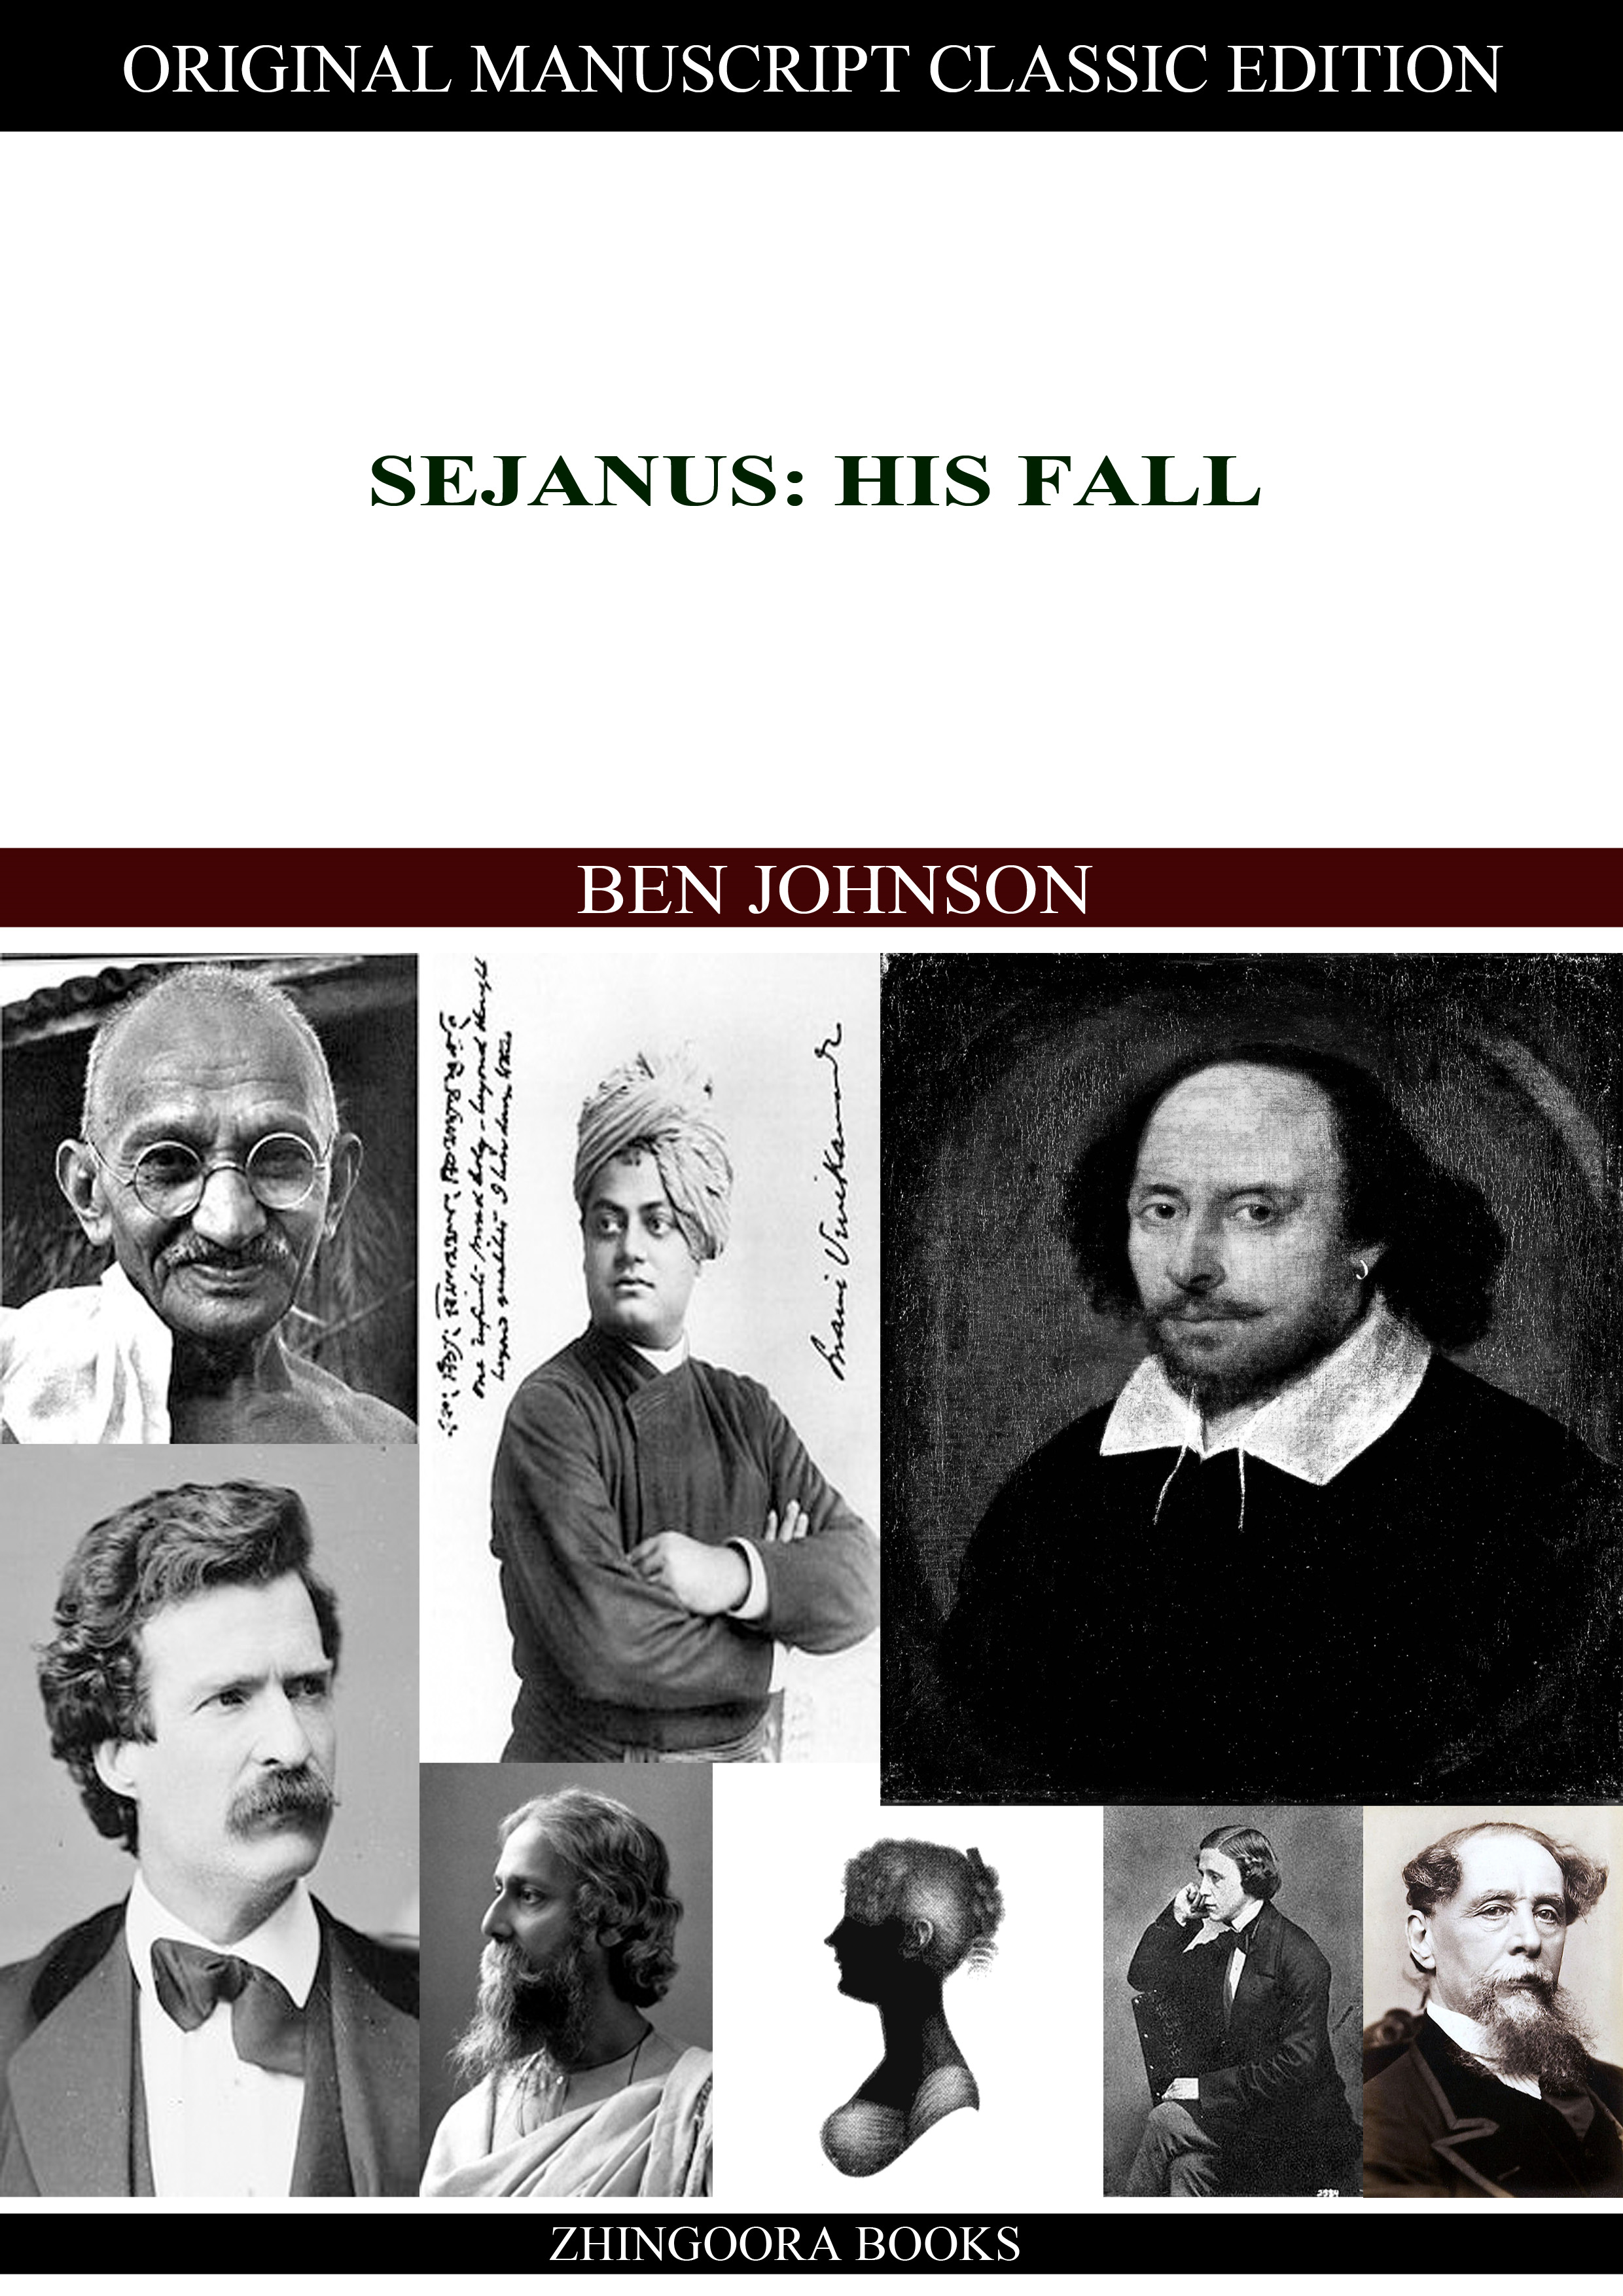 Sejanus: His Fall